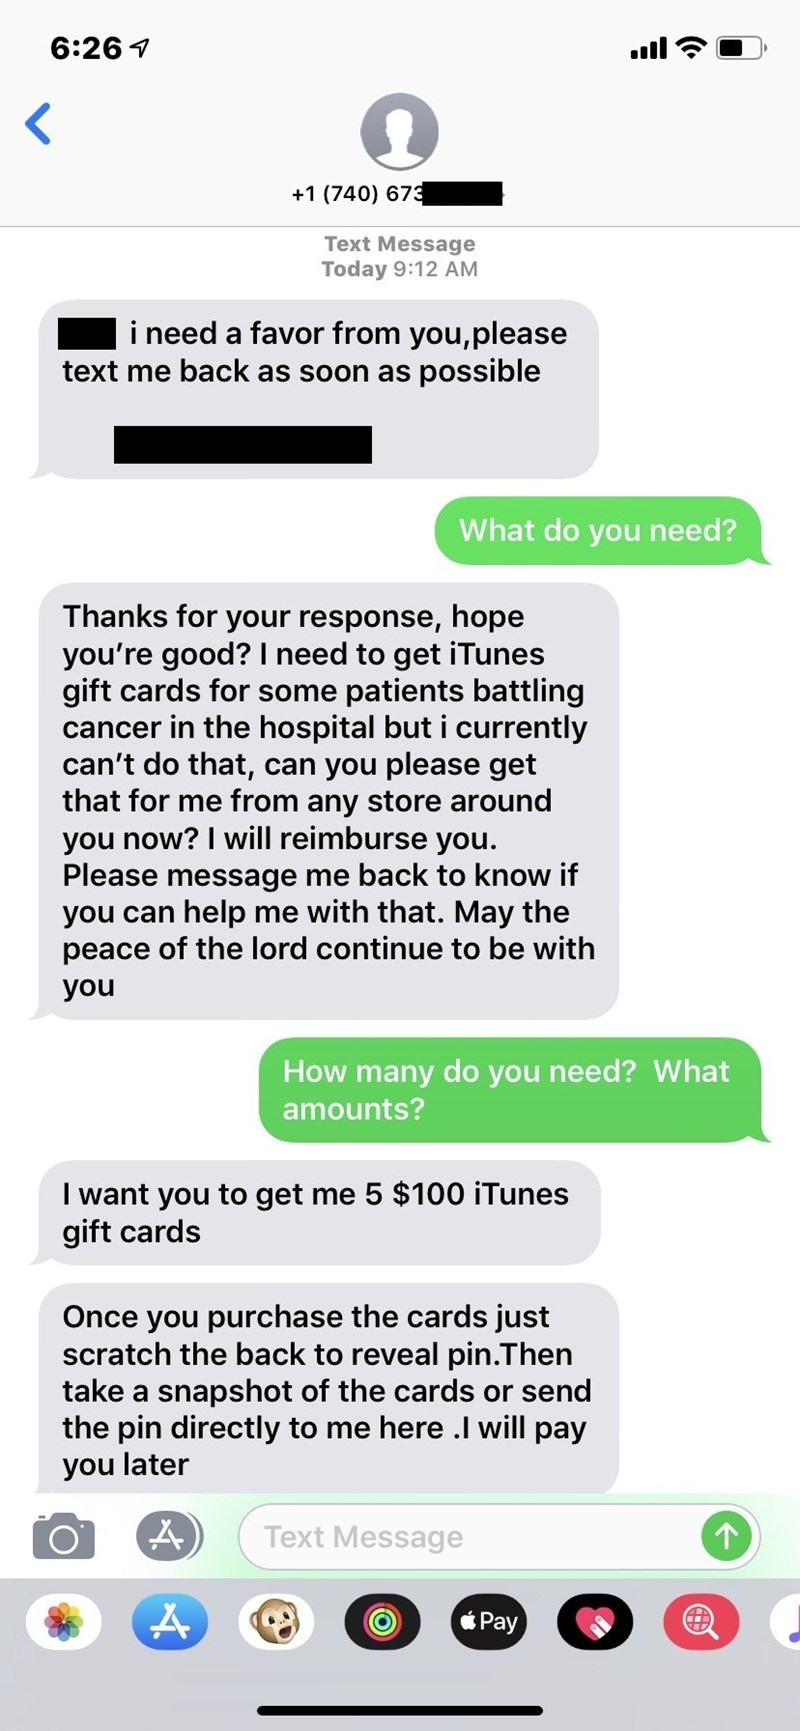 Text - 6:261 +1 (740) 673 Text Message Today 9:12 AM i need a favor from you,please text me back as soon as possible What do you need? Thanks for your response, hope you're good? I need to get iTunes gift cards for some patients battling cancer in the hospital but i currently can't do that, can you please get that for me from any store around you now? I will reimburse you. Please message me back to know if you can help me with that. May the peace of the lord continue to be with you How many do y